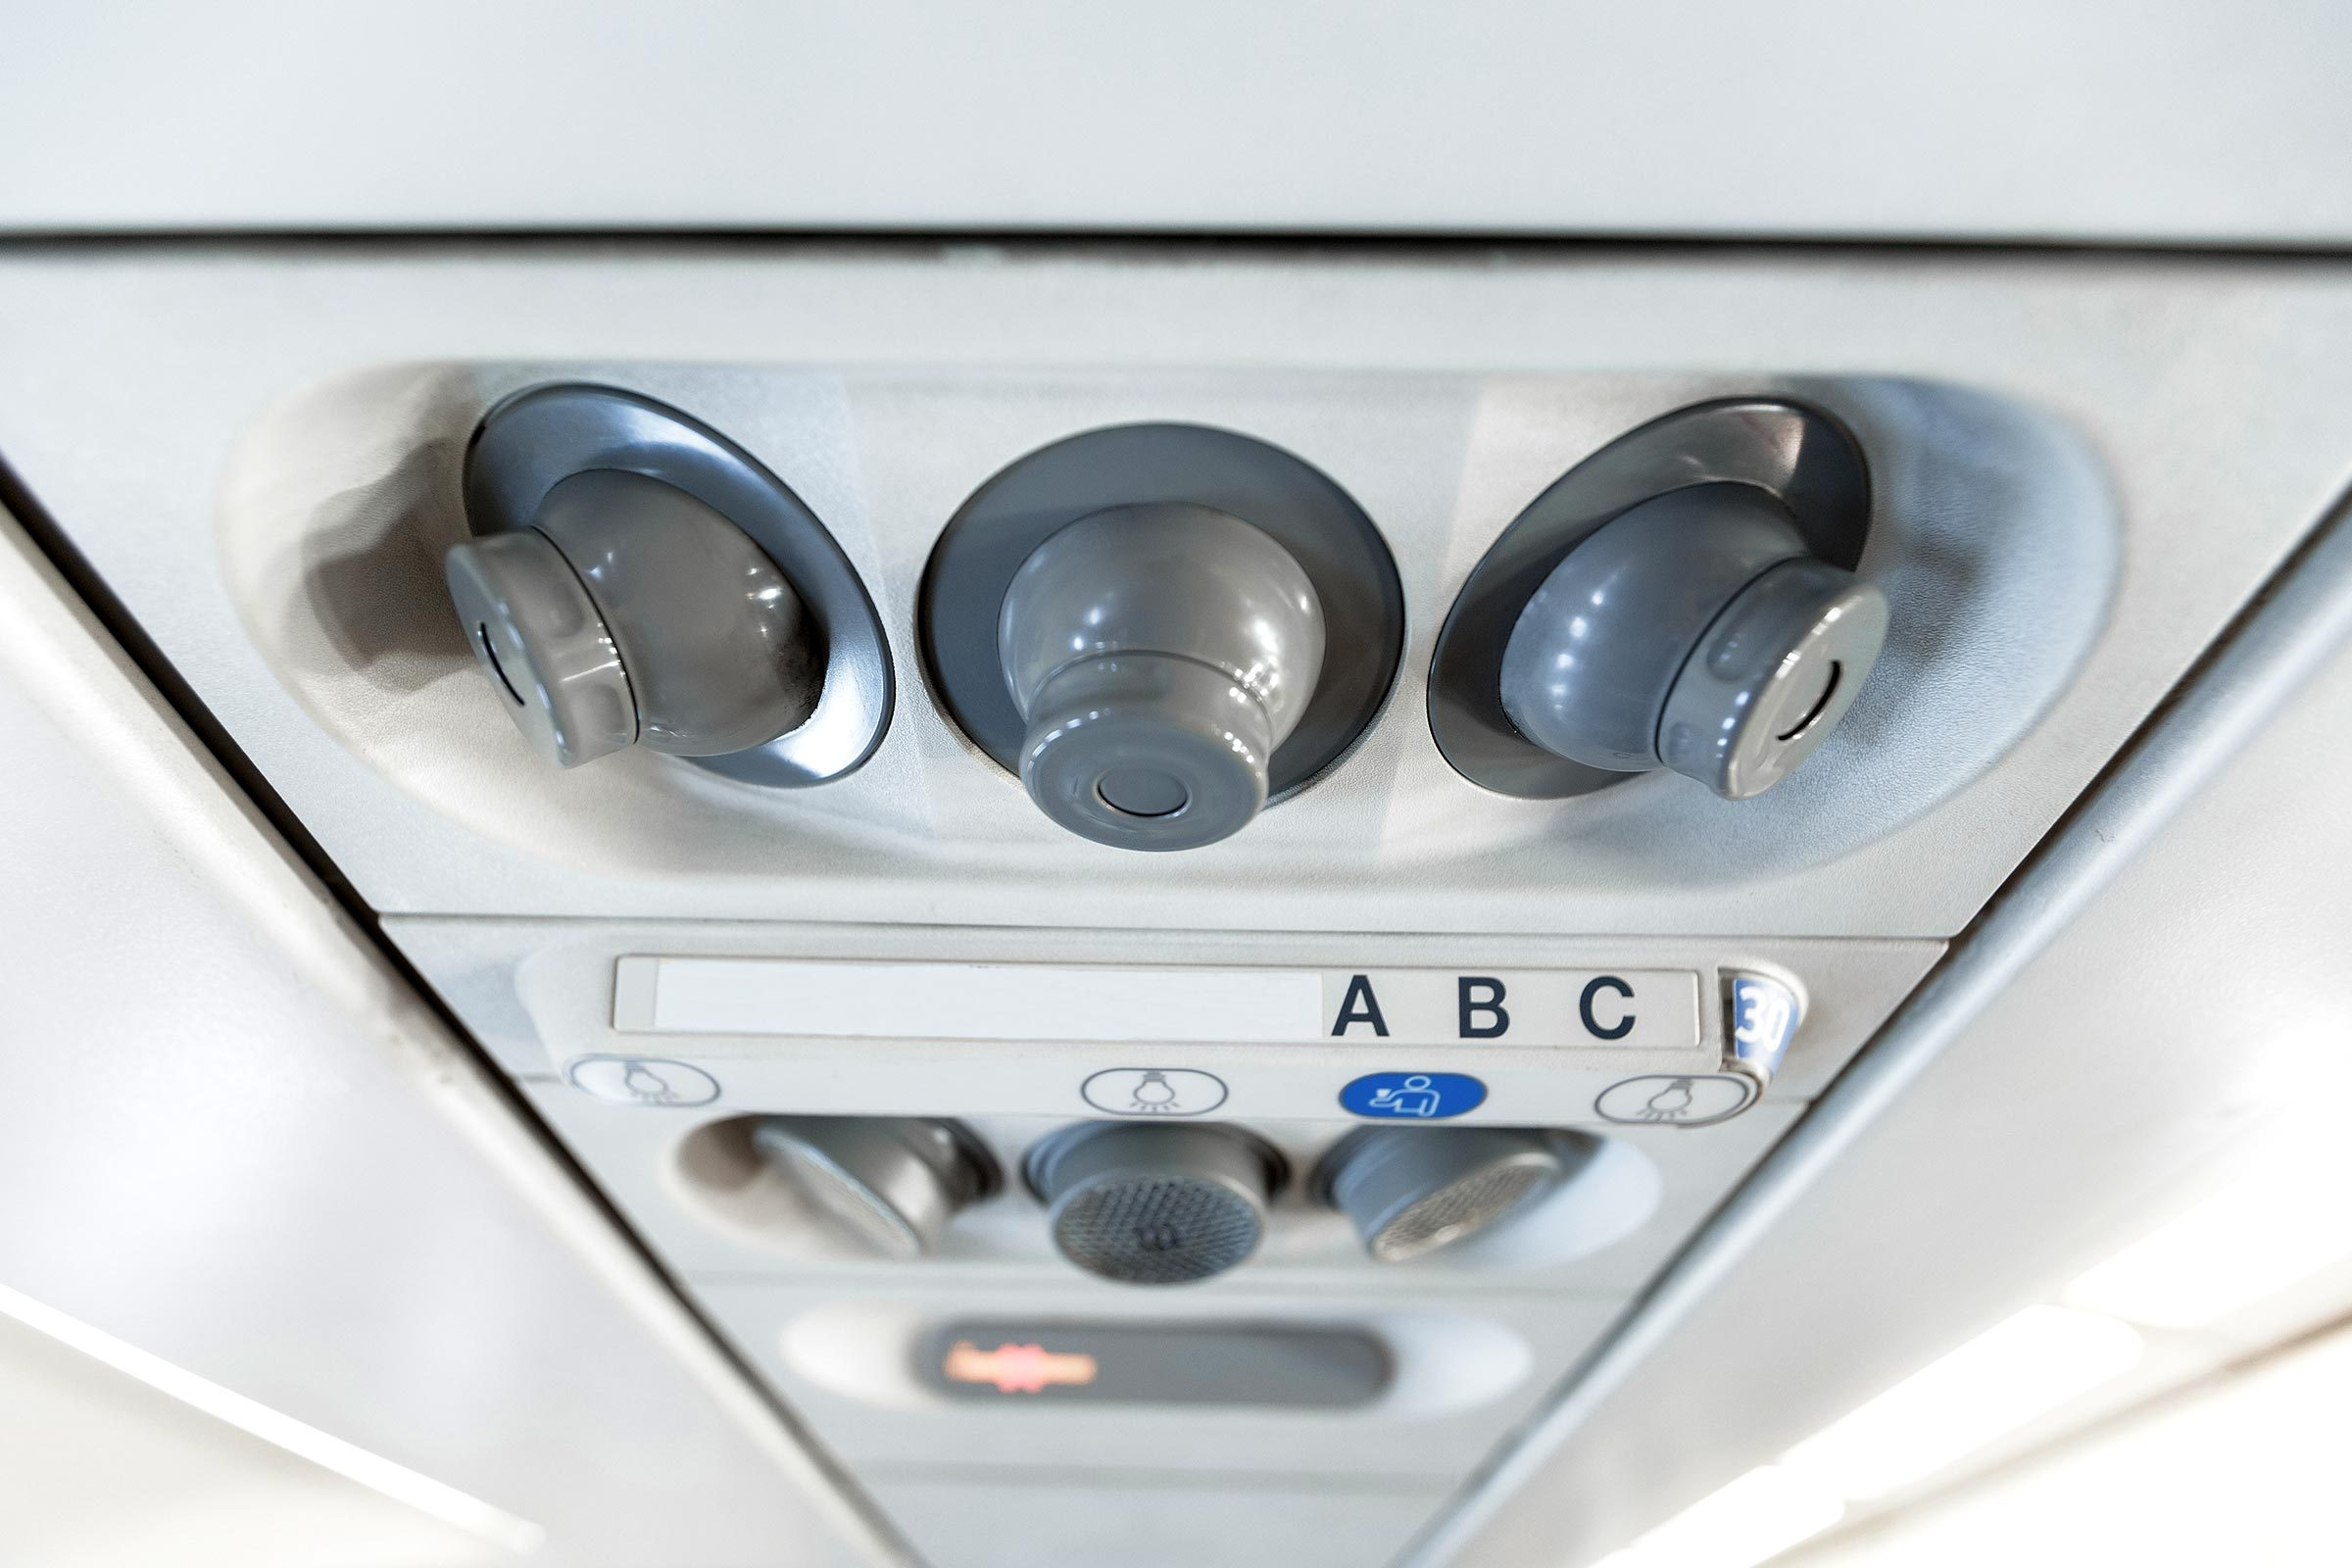 Overhead console in the modern passenger aircraft. air conditioner button and lighting switch